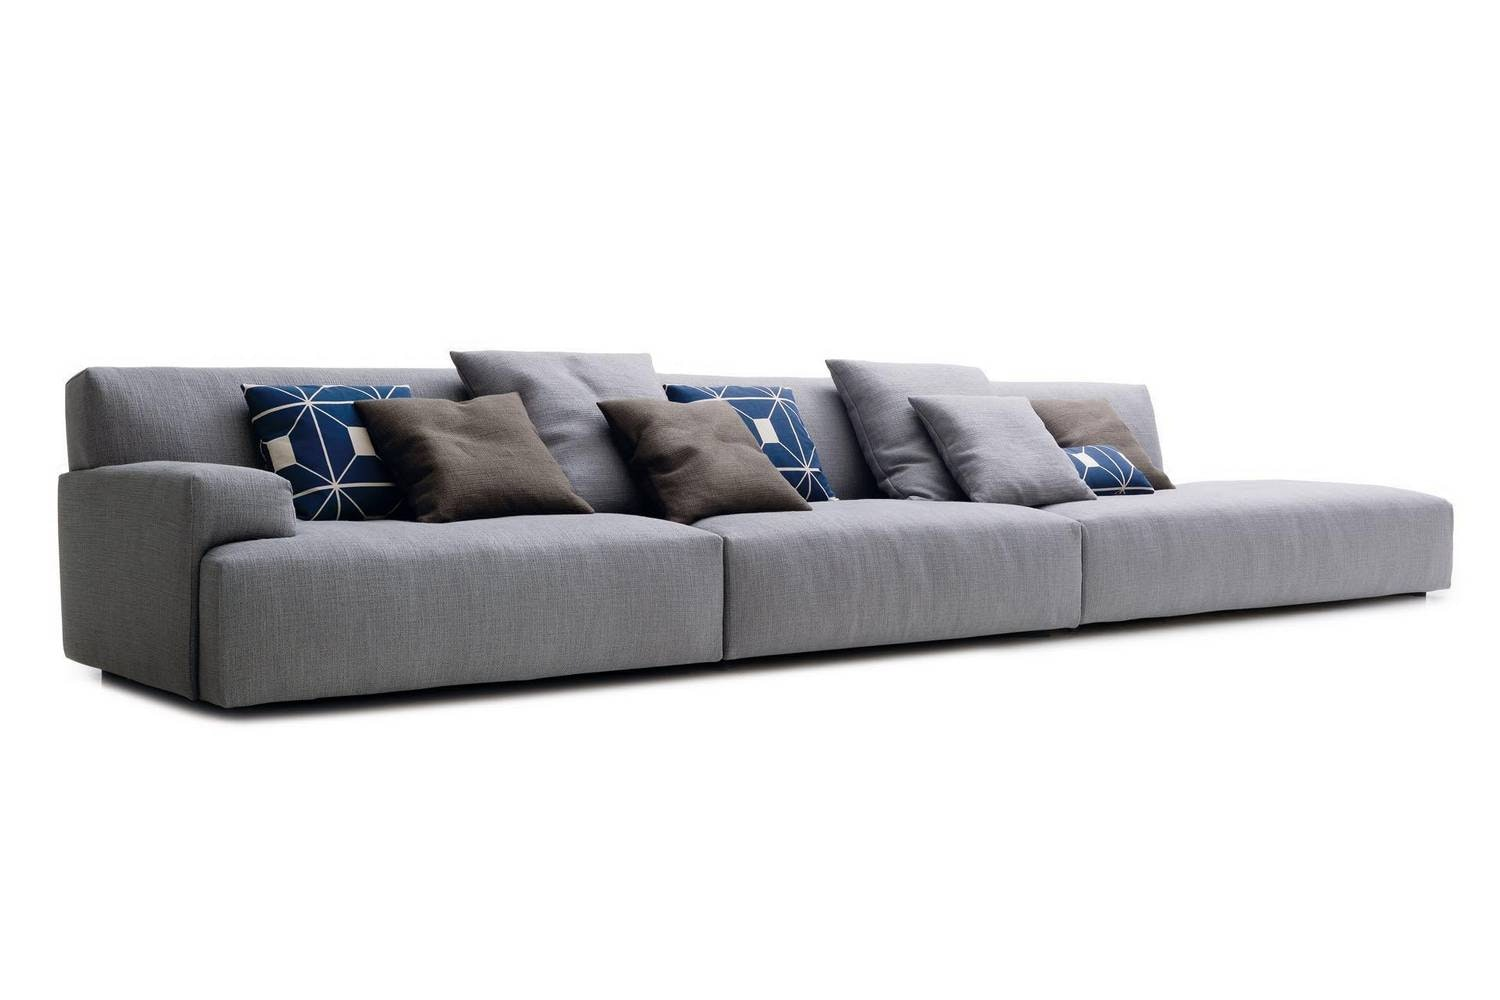 Soho Sofa by Paolo Piva for Poliform